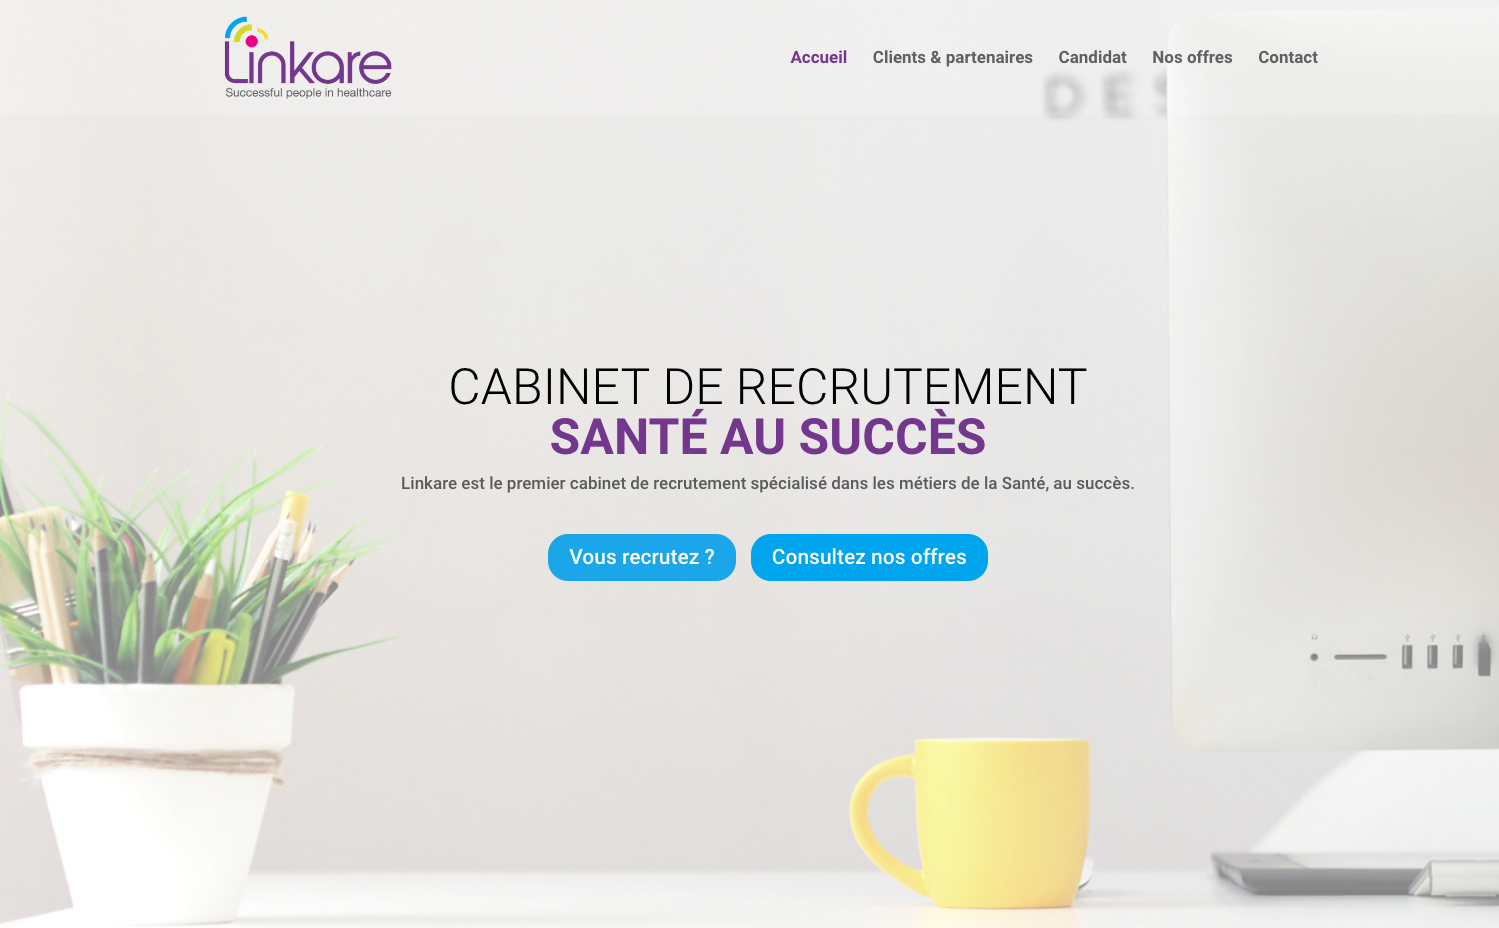 Linkare consulting cabinet de recrutement sant au succ s - Cabinet de recrutement levallois perret ...